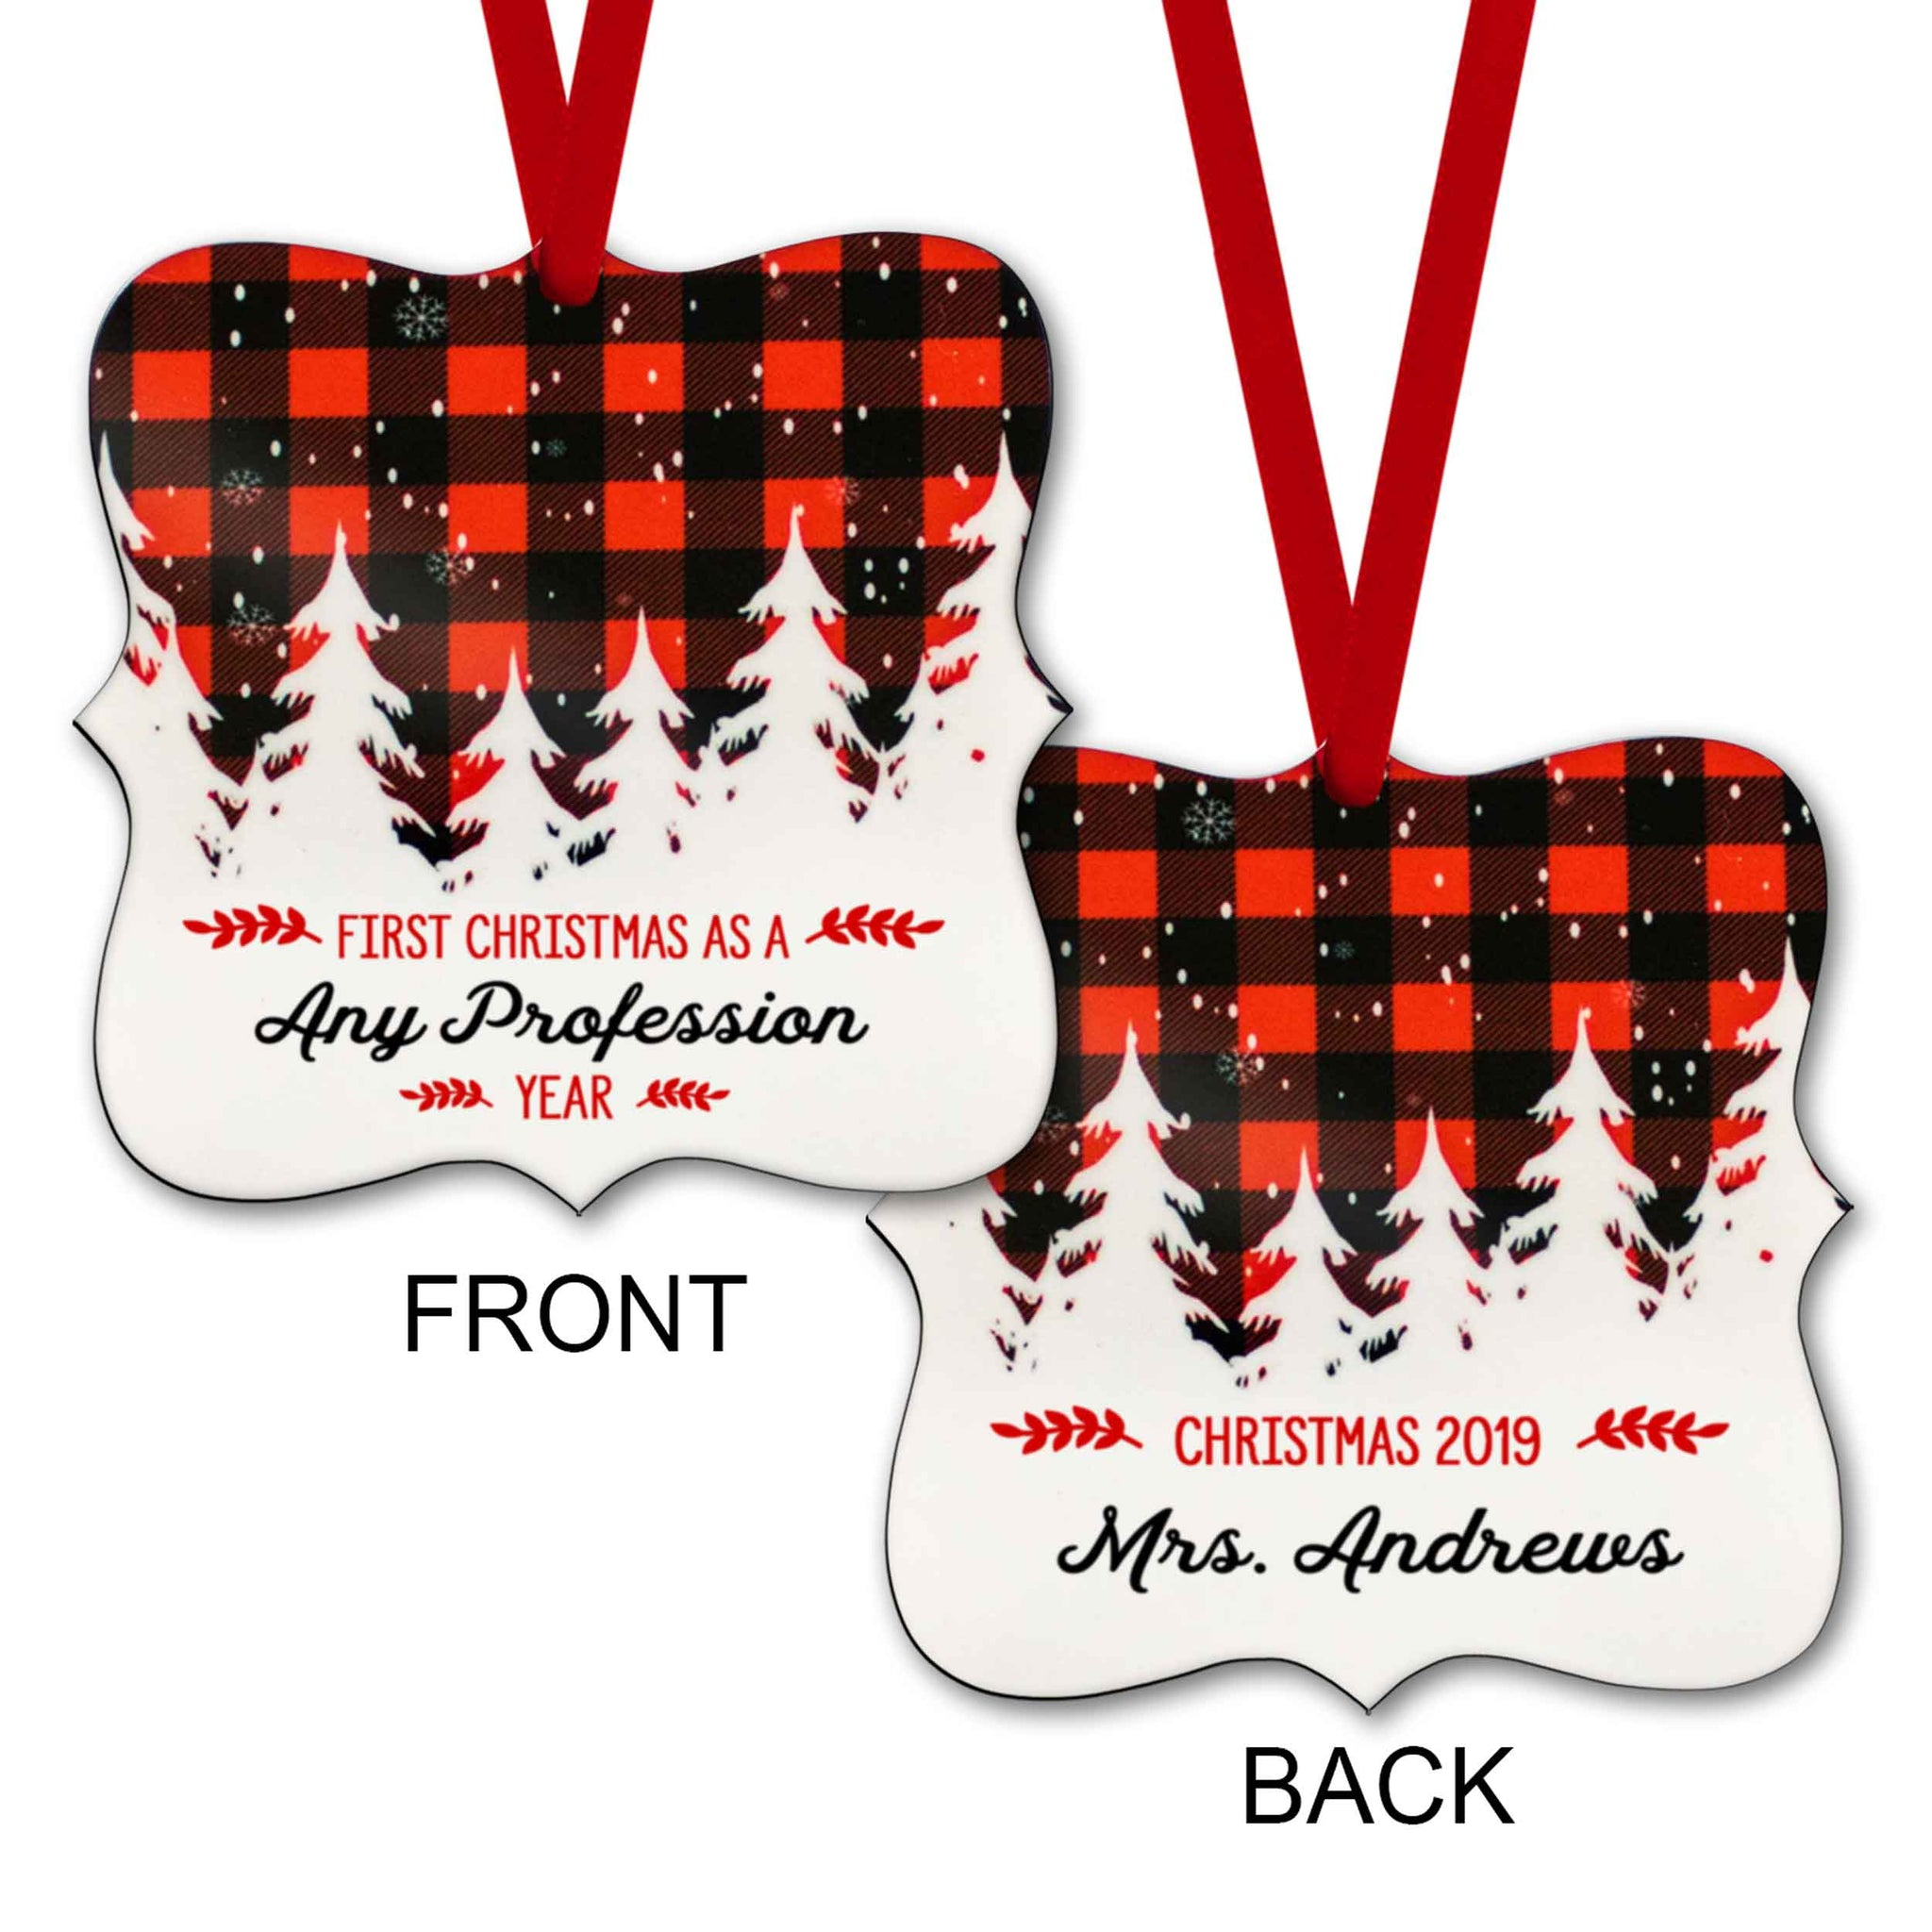 CopyrightPaisleyGroveGIFTS S502m Customized Personalized First Christmas Ornament Any Profession with Custom Year